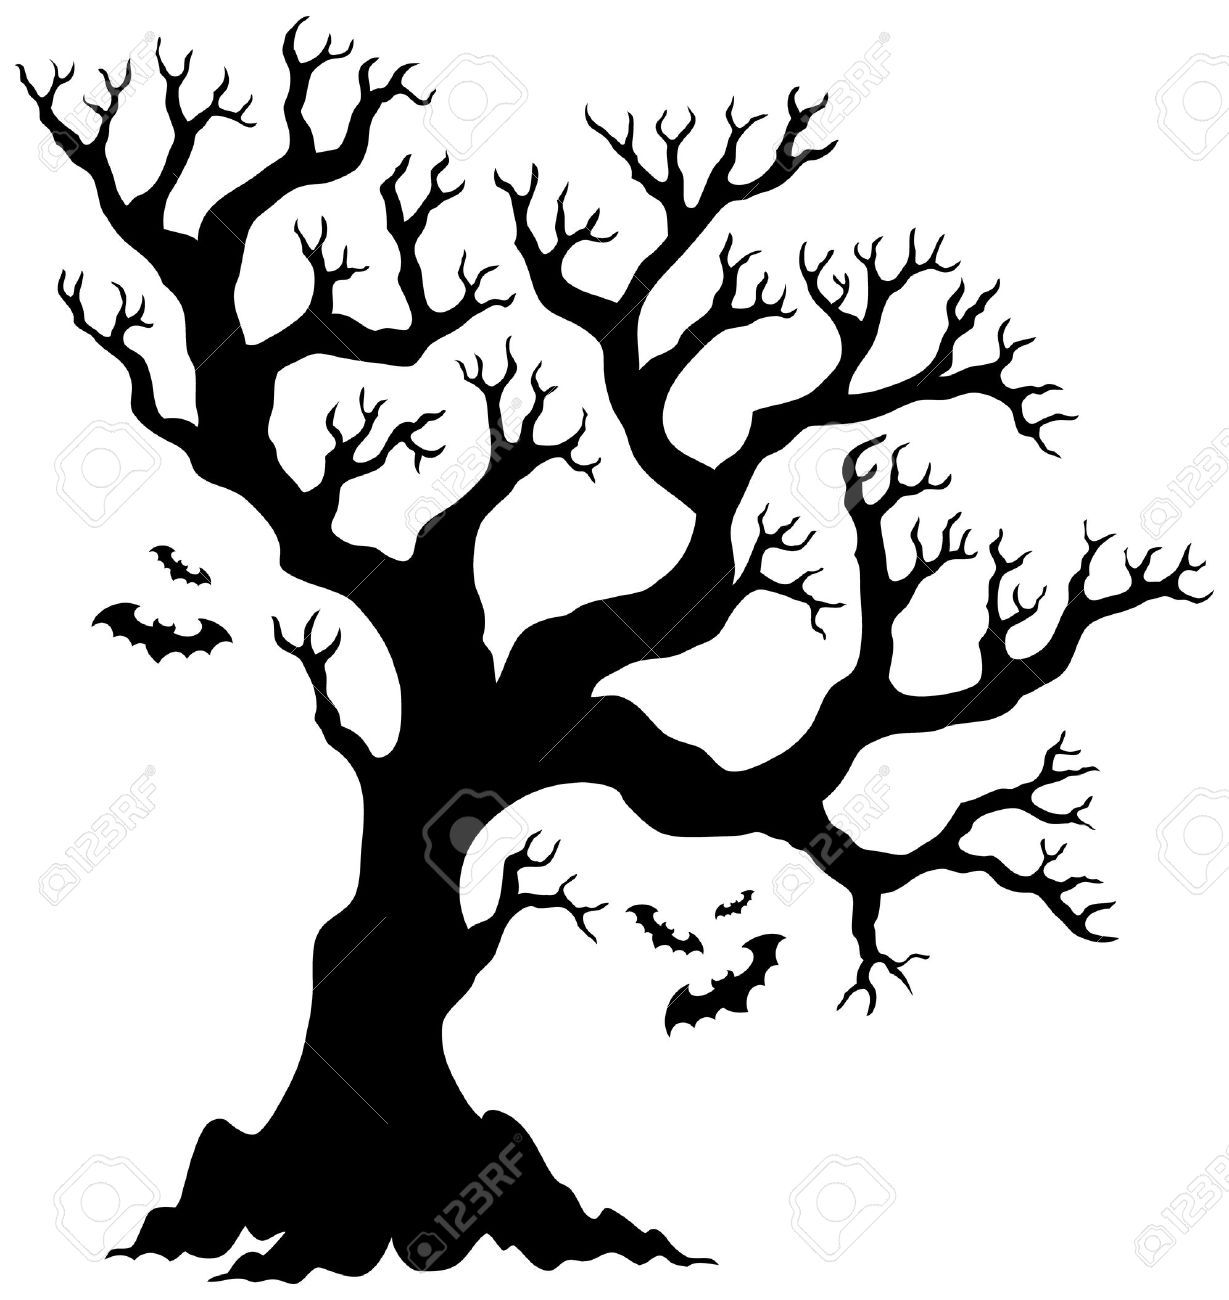 medium resolution of silhouette halloween tree with bats royalty free cliparts vectors